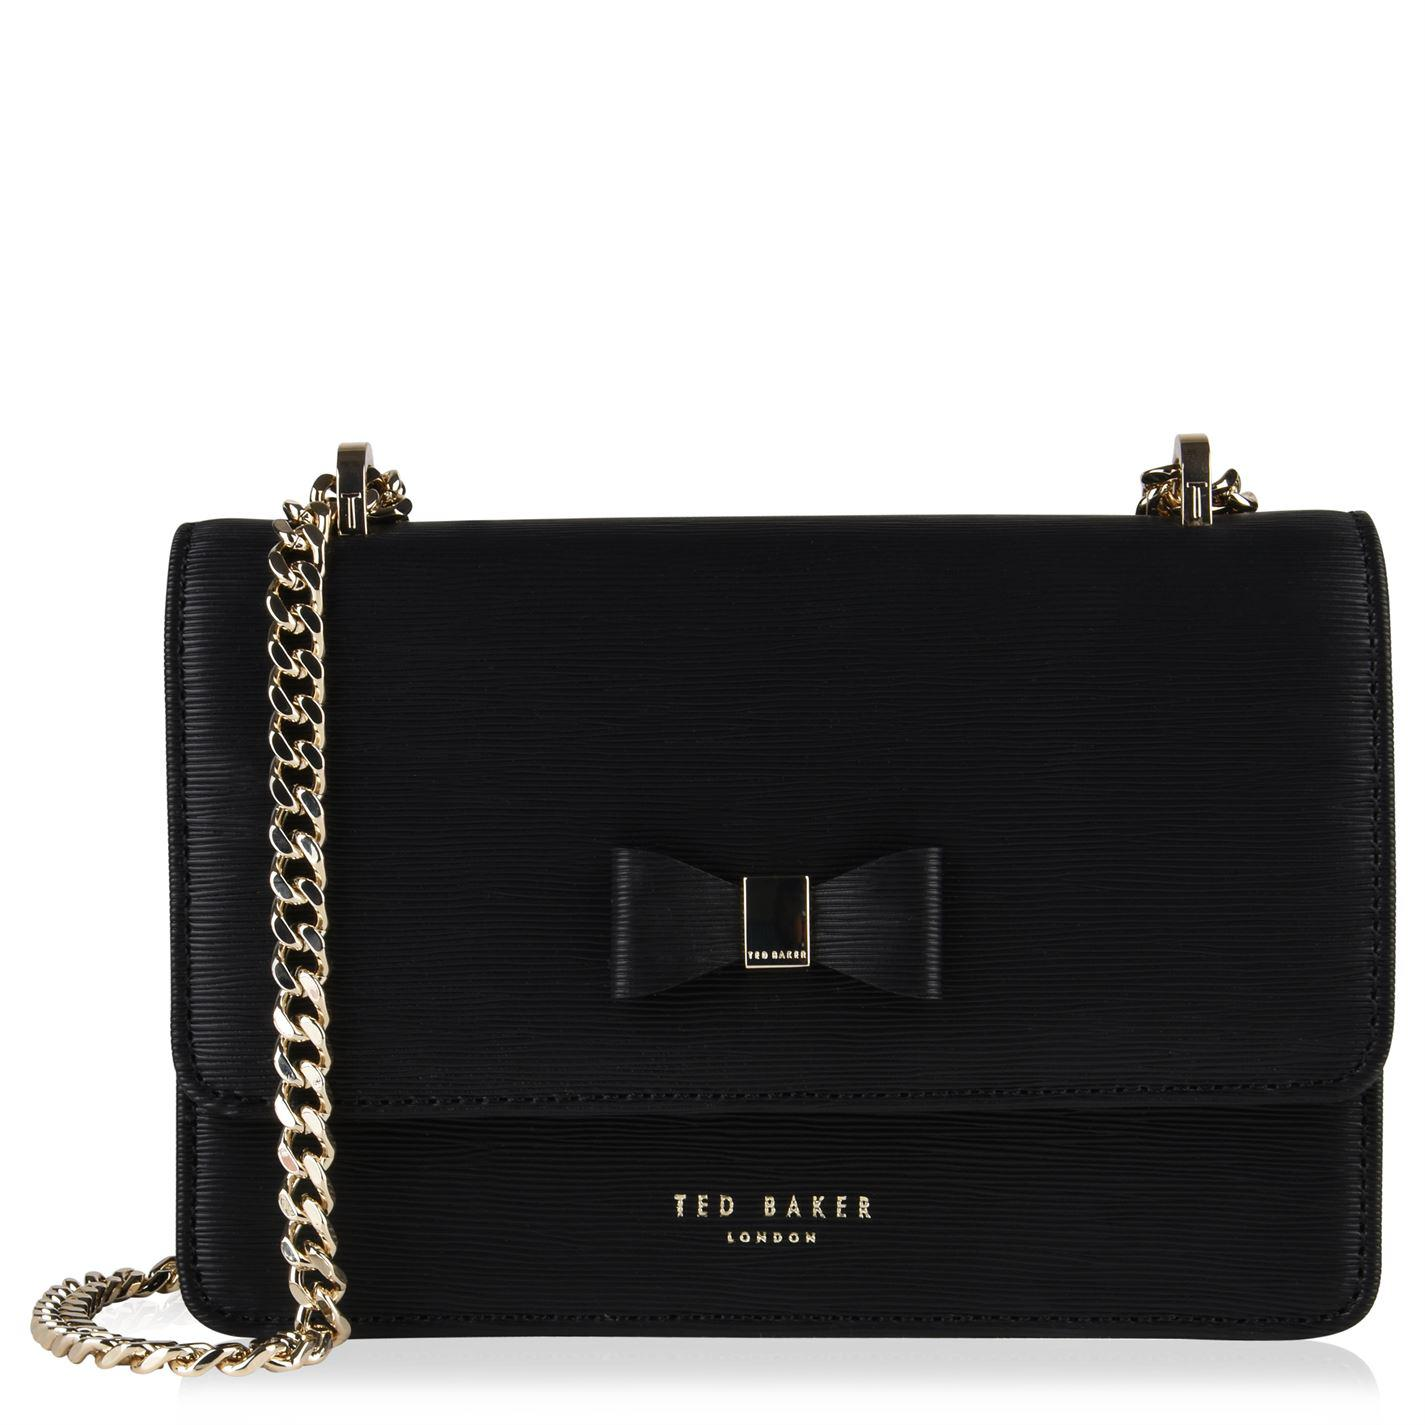 bbb534f16 Lyst - Ted Baker Bow Leather Cross Body Bag in Black